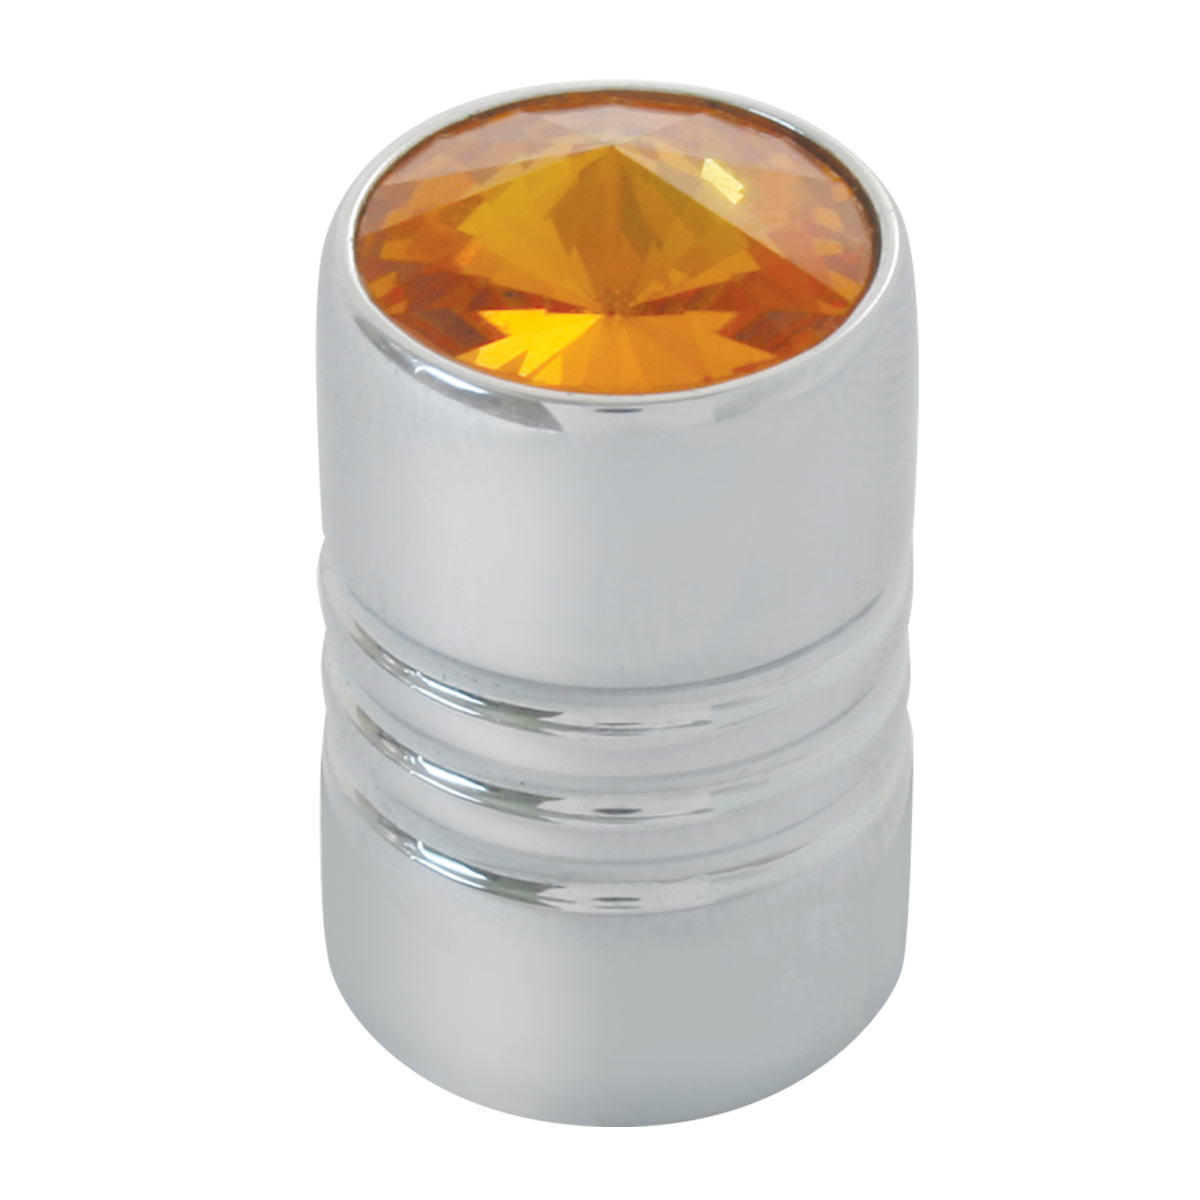 #50610 Chrome Plated Aluminum Tire Valve Stem Cover with Amber Crystal on Top